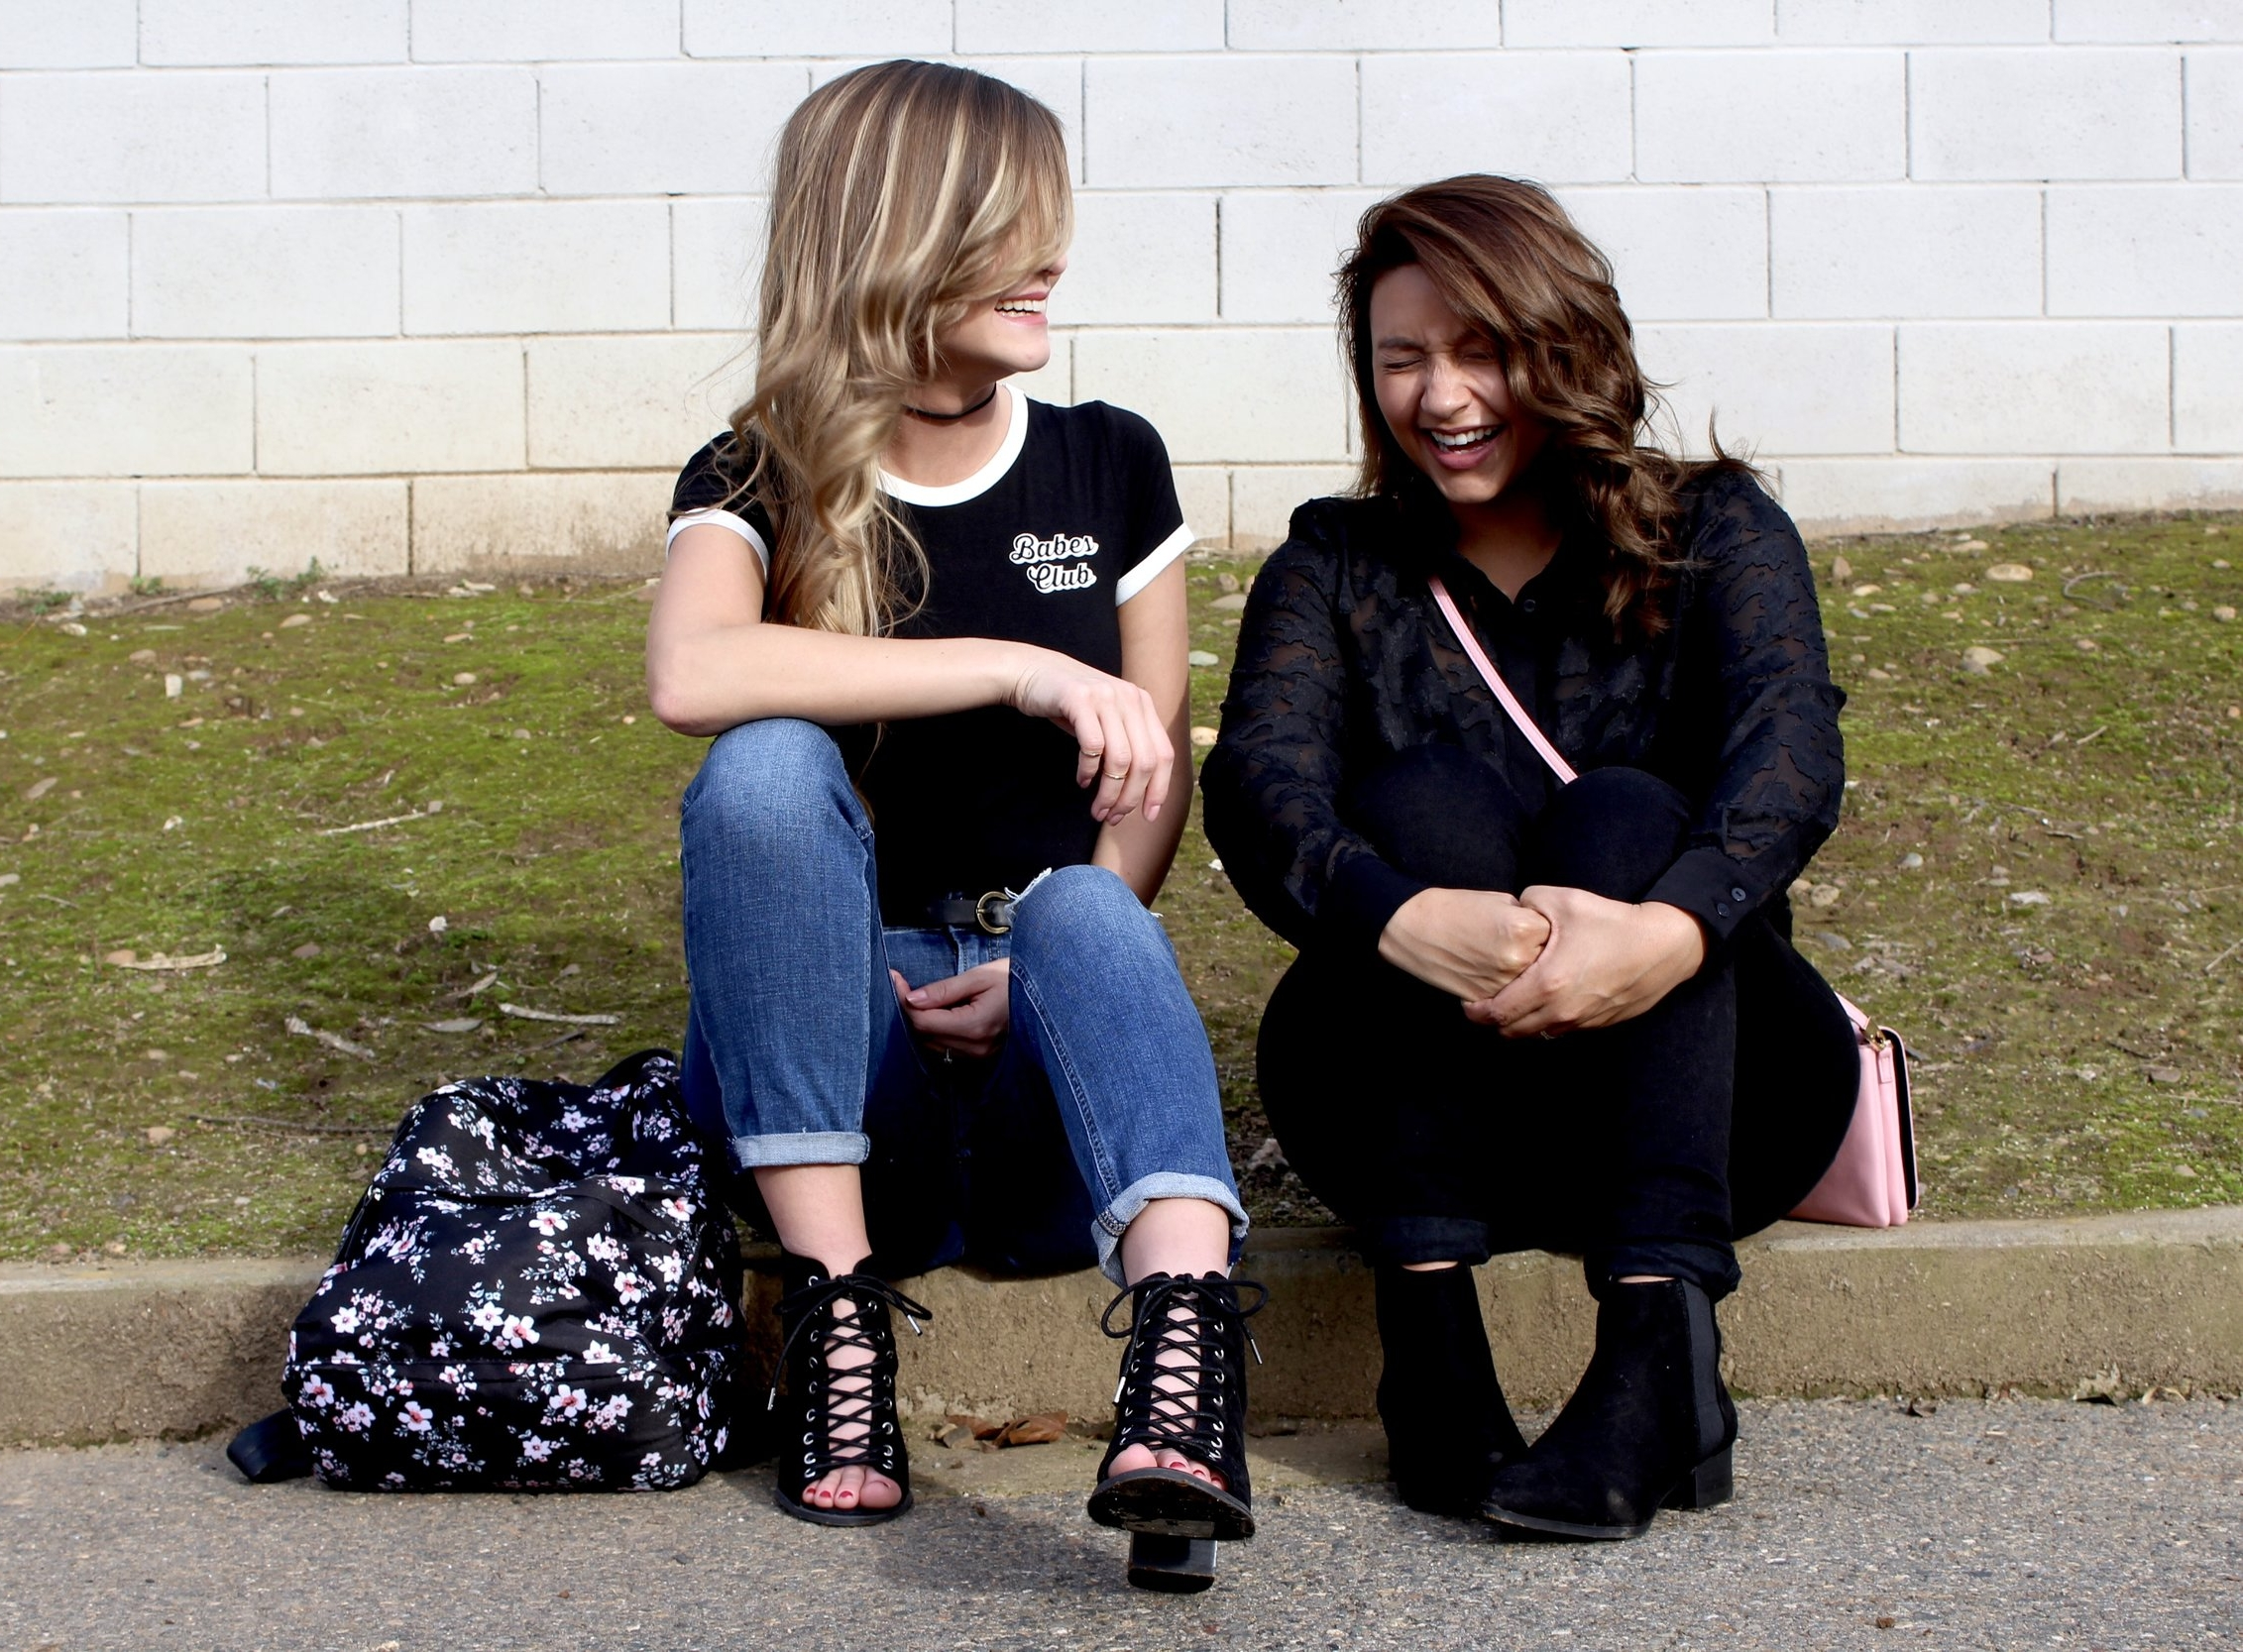 Babes Club Tee, denim pants, with open toed lace up shoes. All black outfits with a pop of pink. Two friends sitting curbside